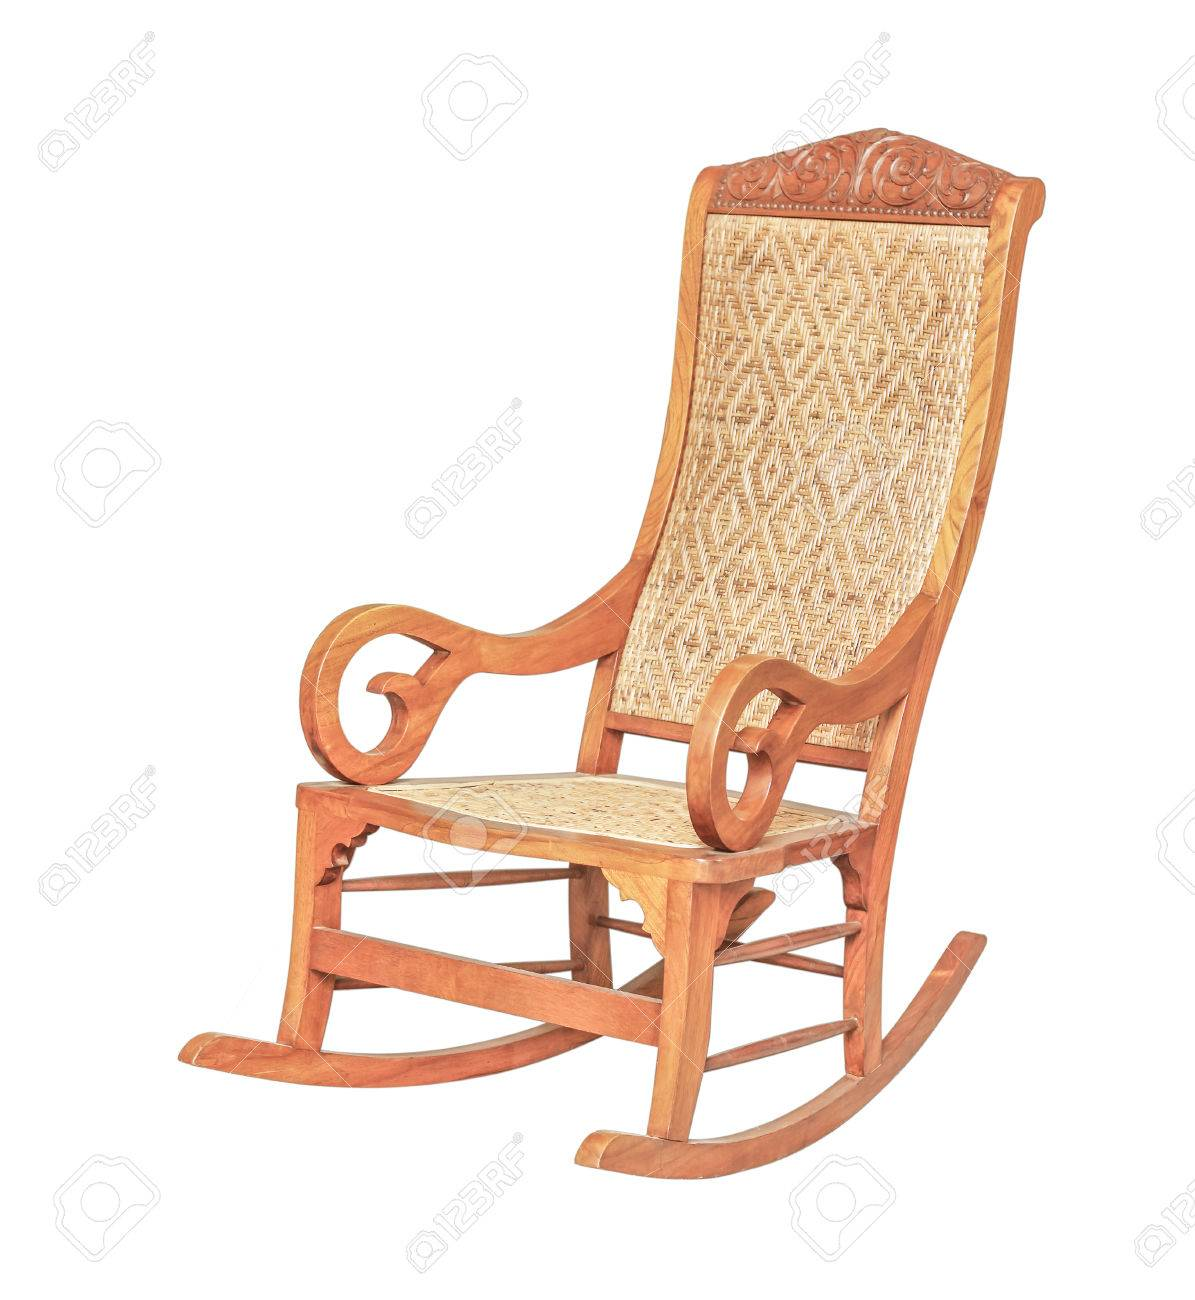 An antique cane rocking chair isolated on white. Stock Photo - 69501660 - An Antique Cane Rocking Chair Isolated On White. Stock Photo